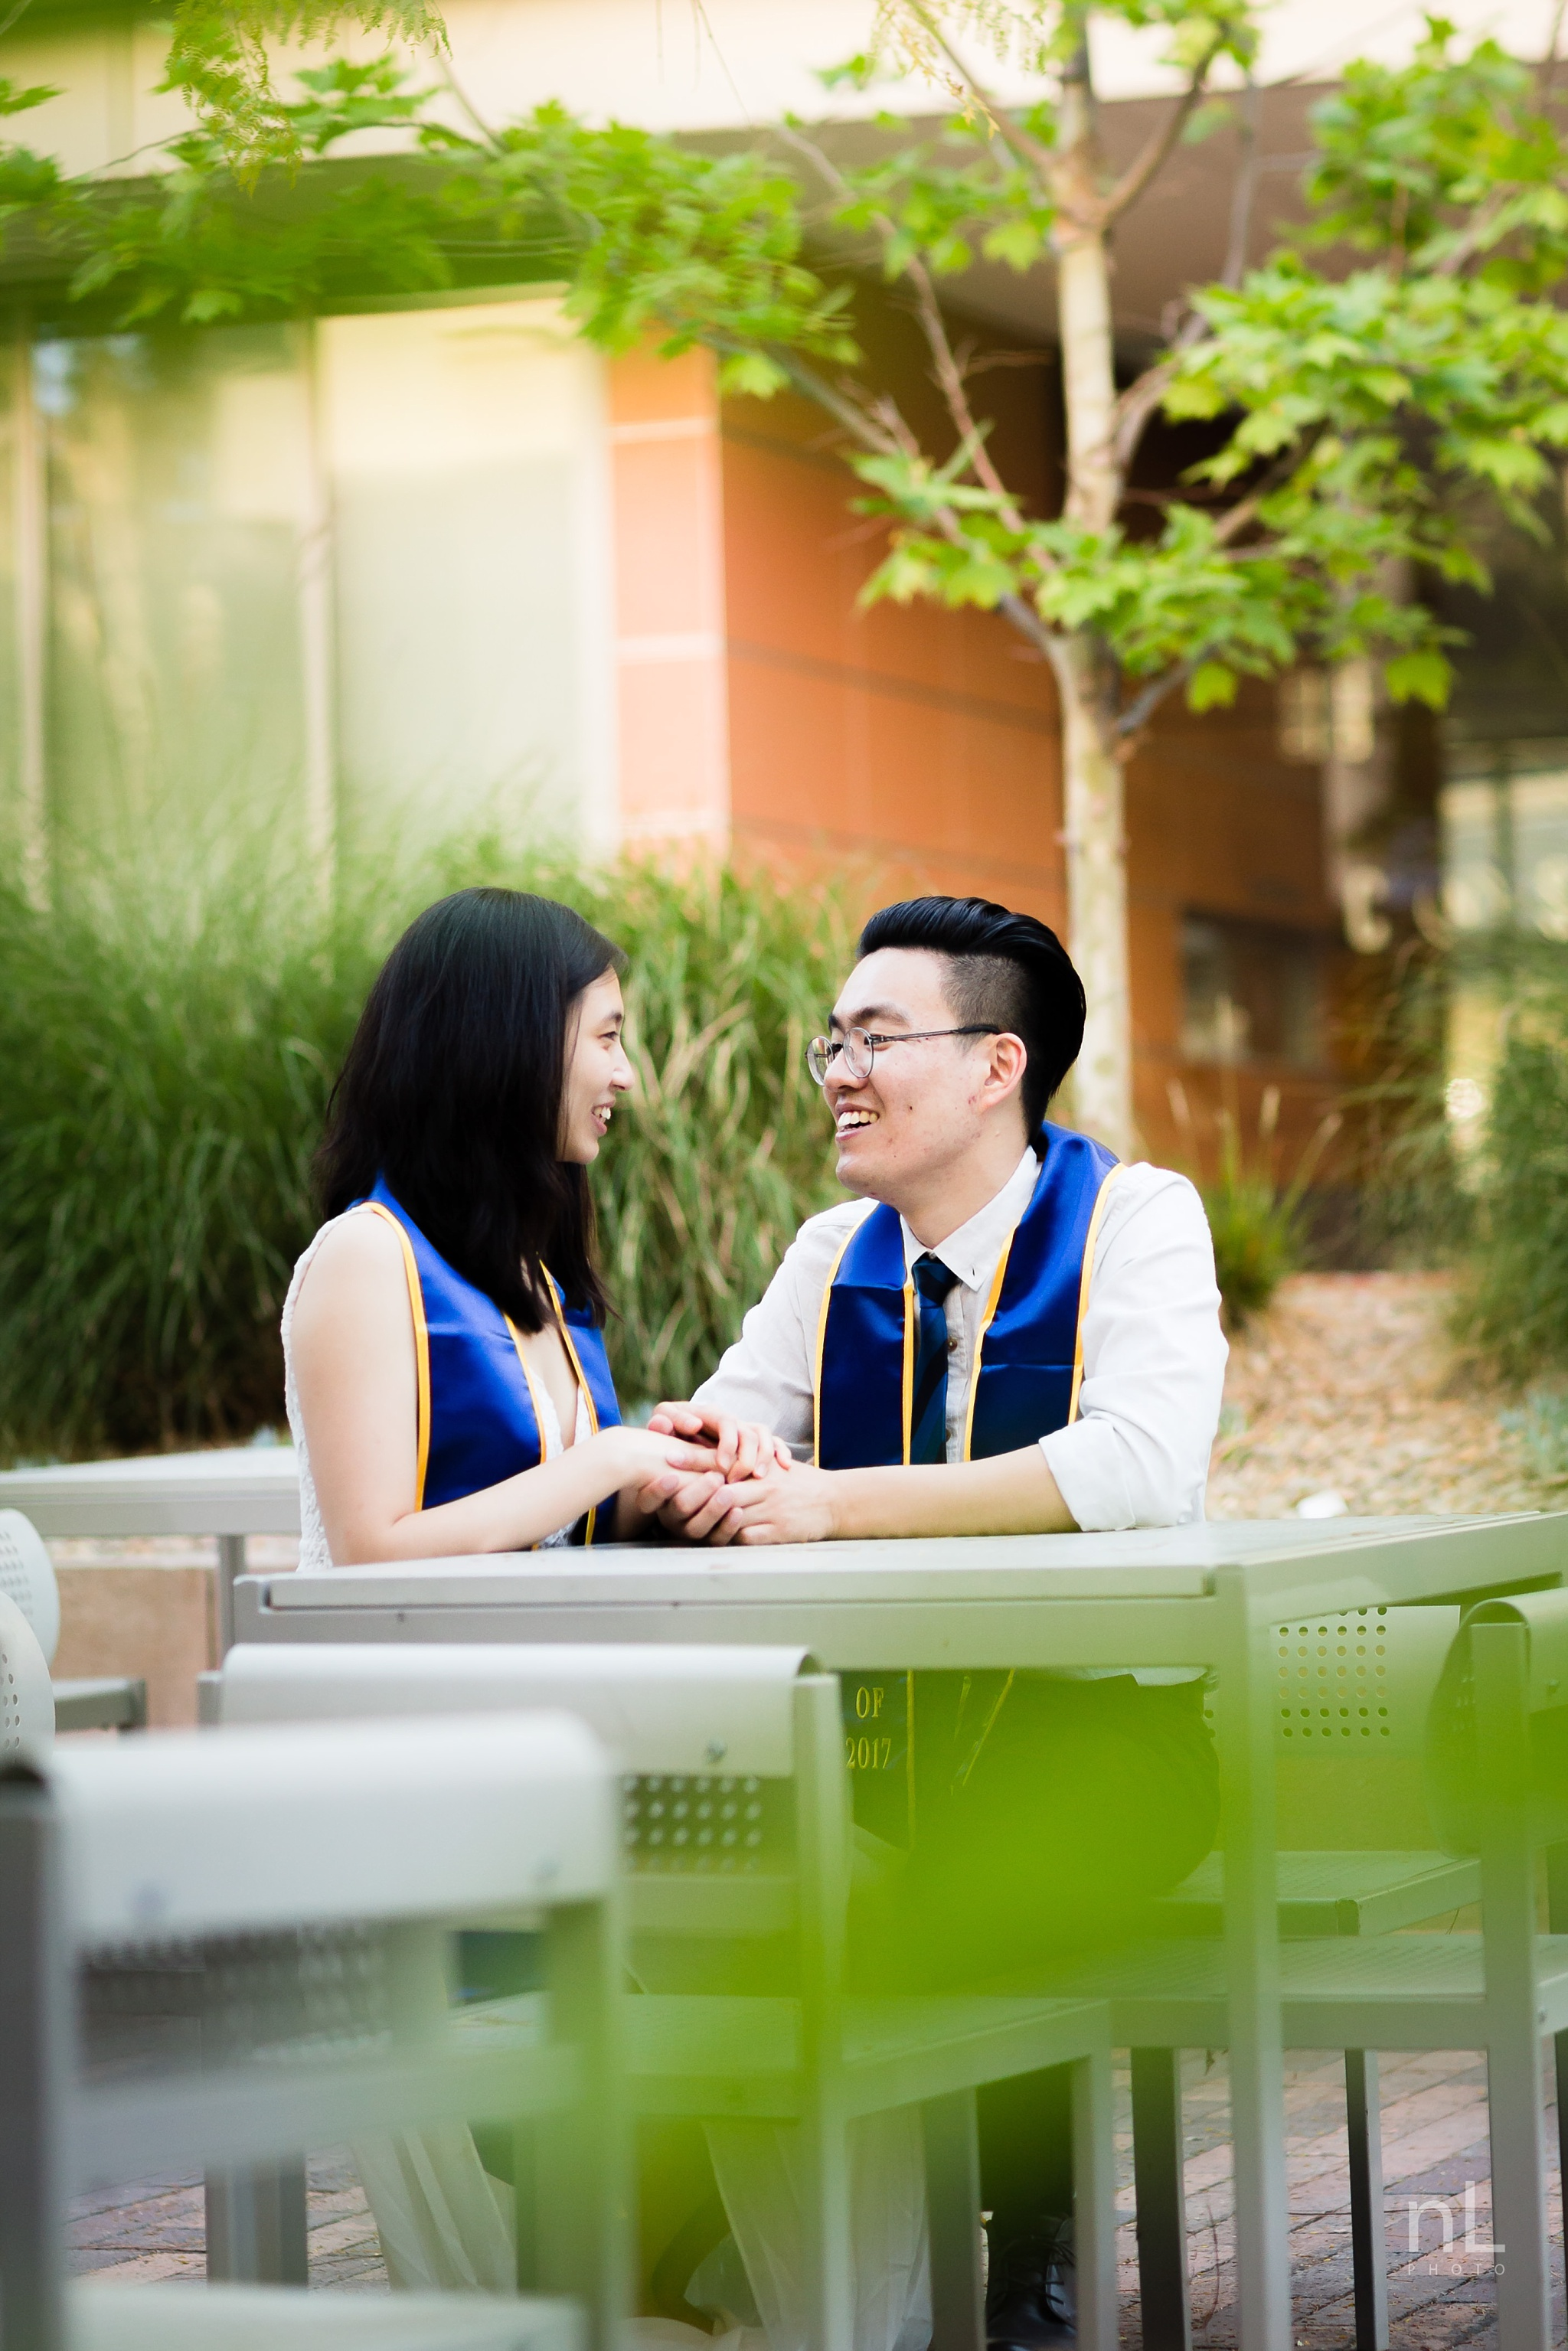 los angeles ucla senior graduation portrait cute couple laughing in bomb shelter cafe